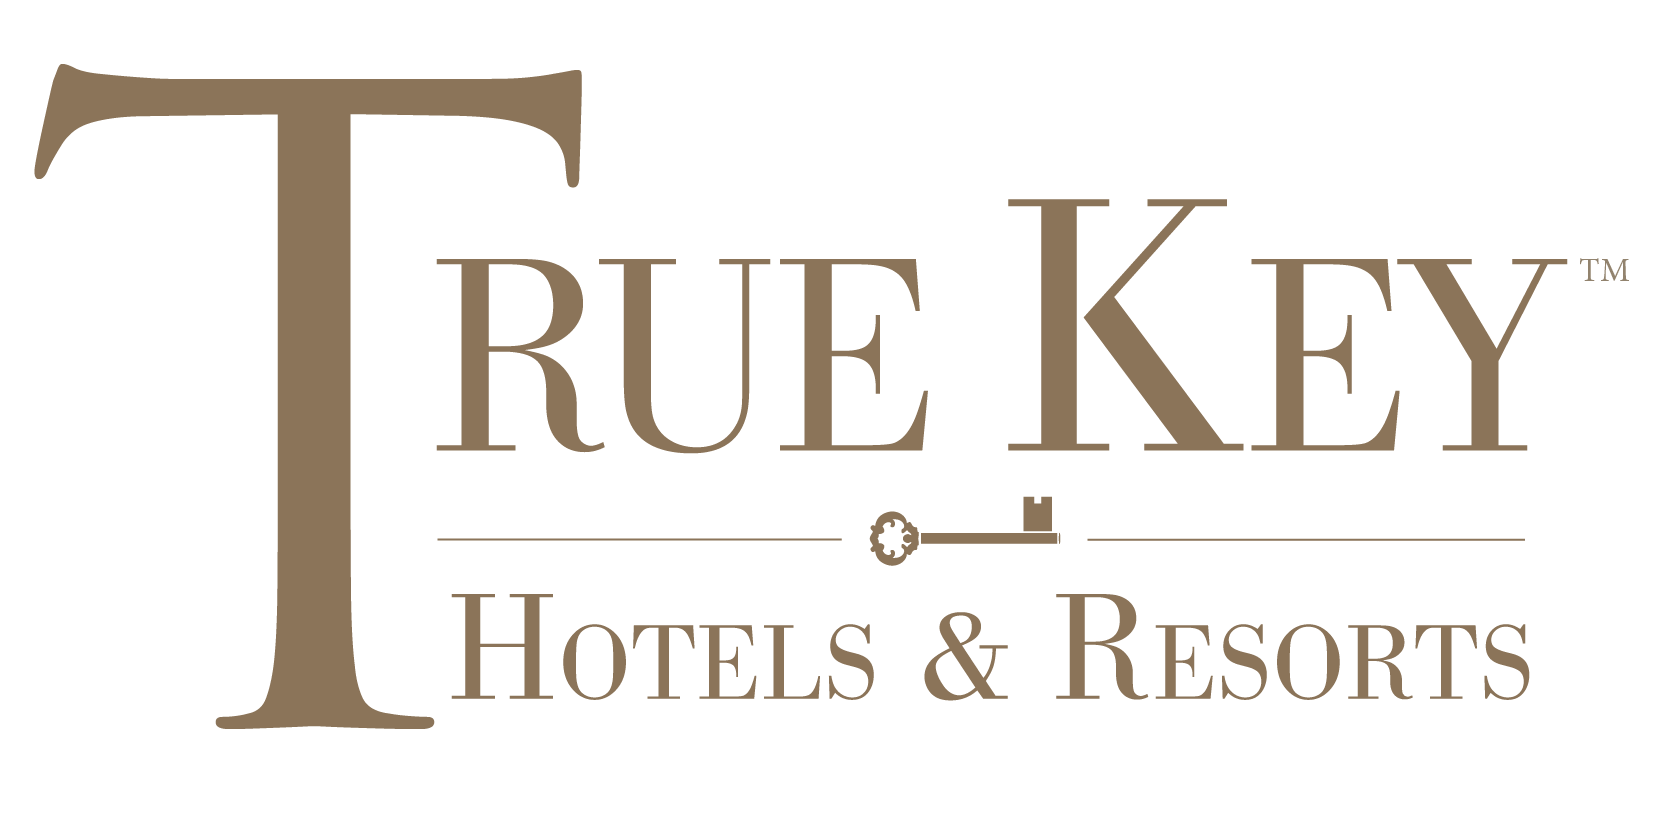 True-key-logo